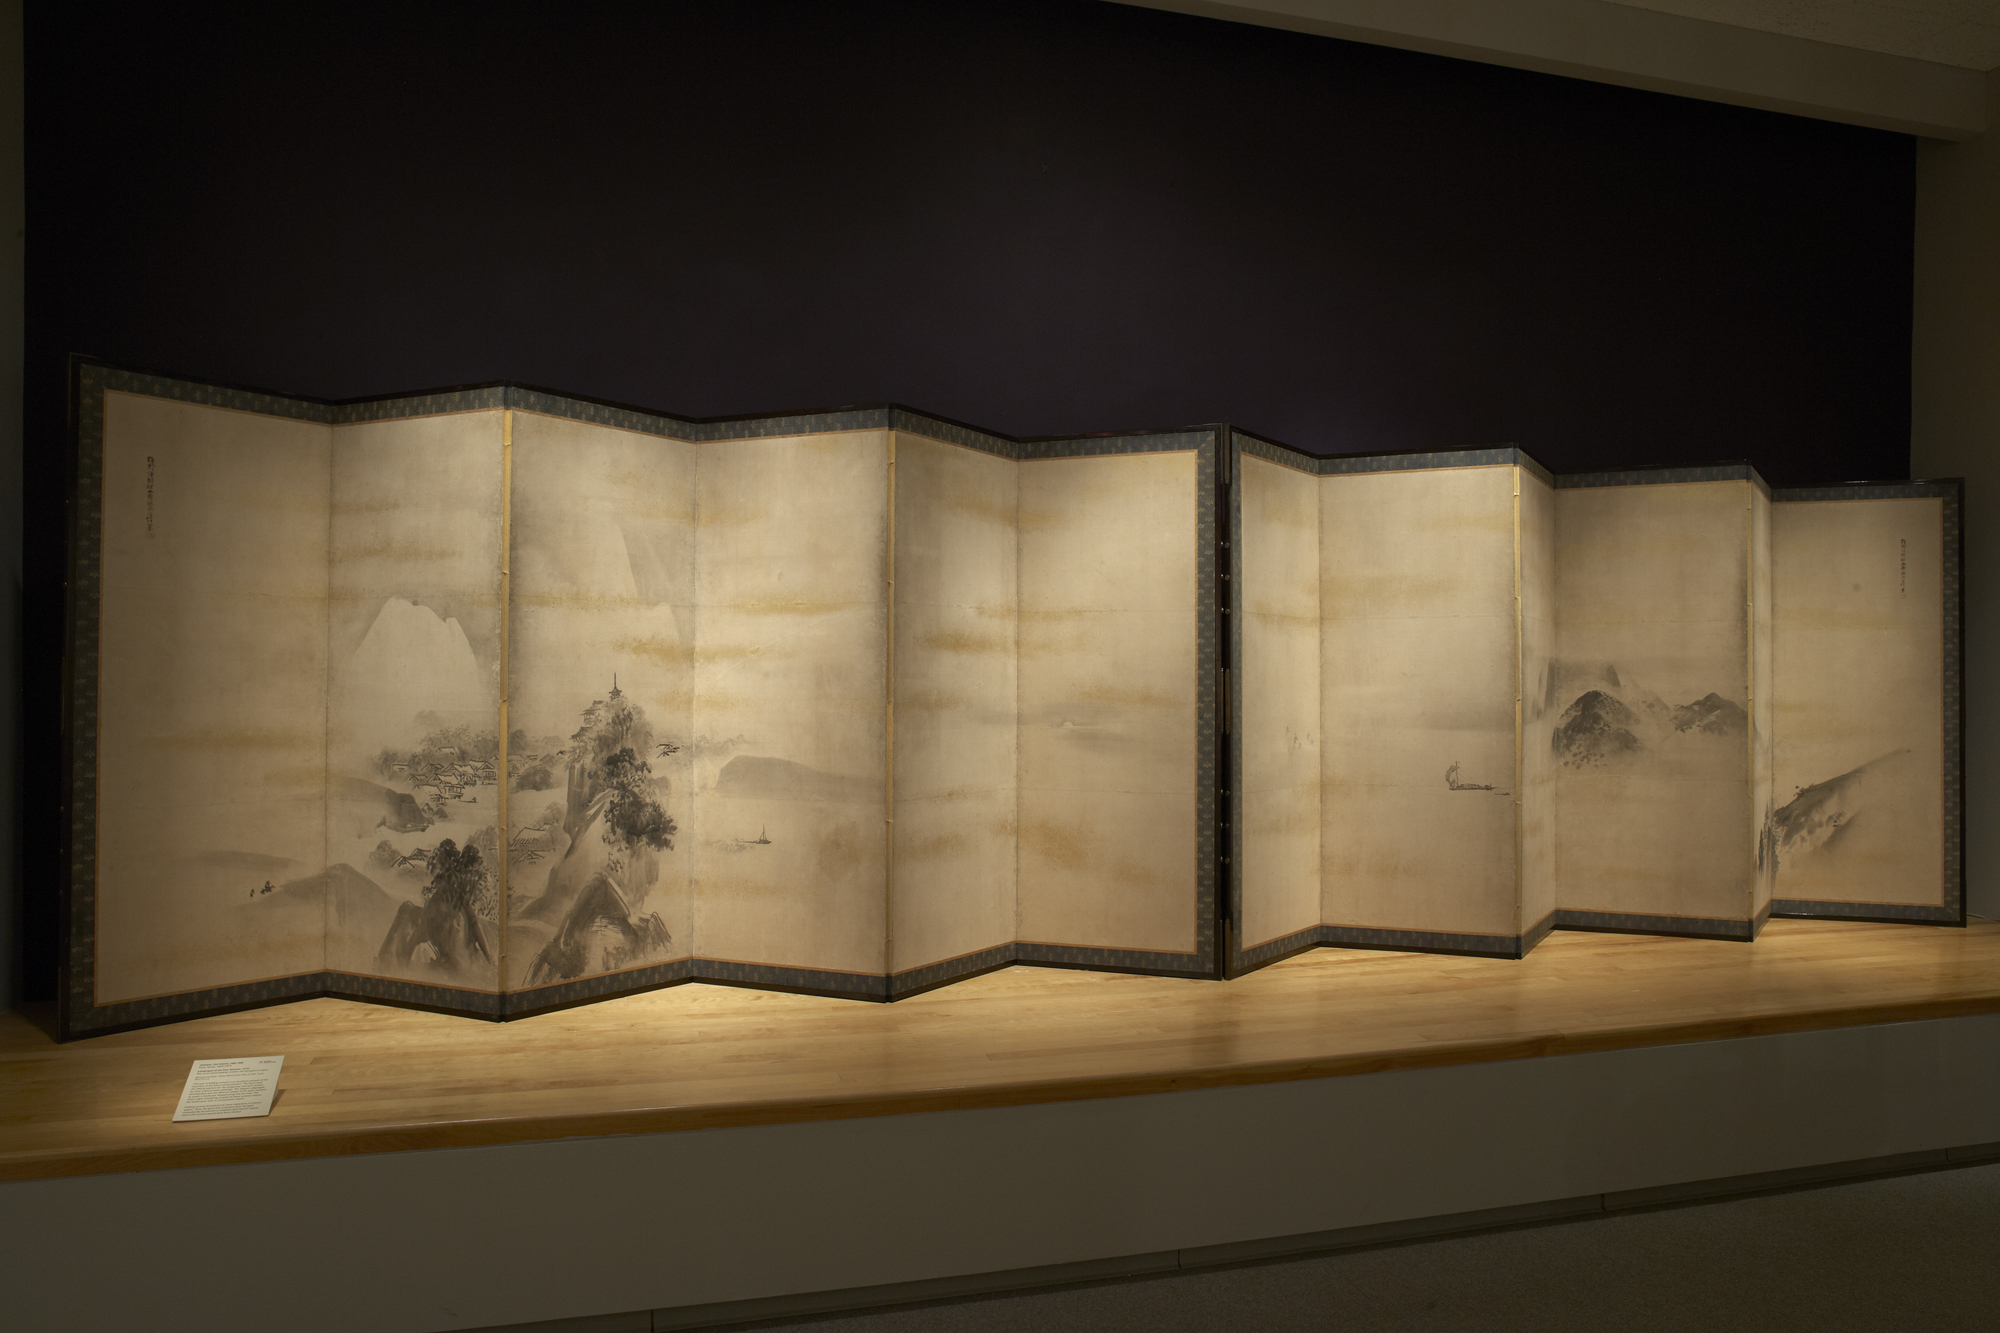 Japanese, Edo period, 1600–1868, Kano Tan'yū, 1602–1674: Landscapes of the Four Seasons, 1640s. (2012-79 a-b). Photo: Bruce M. White.